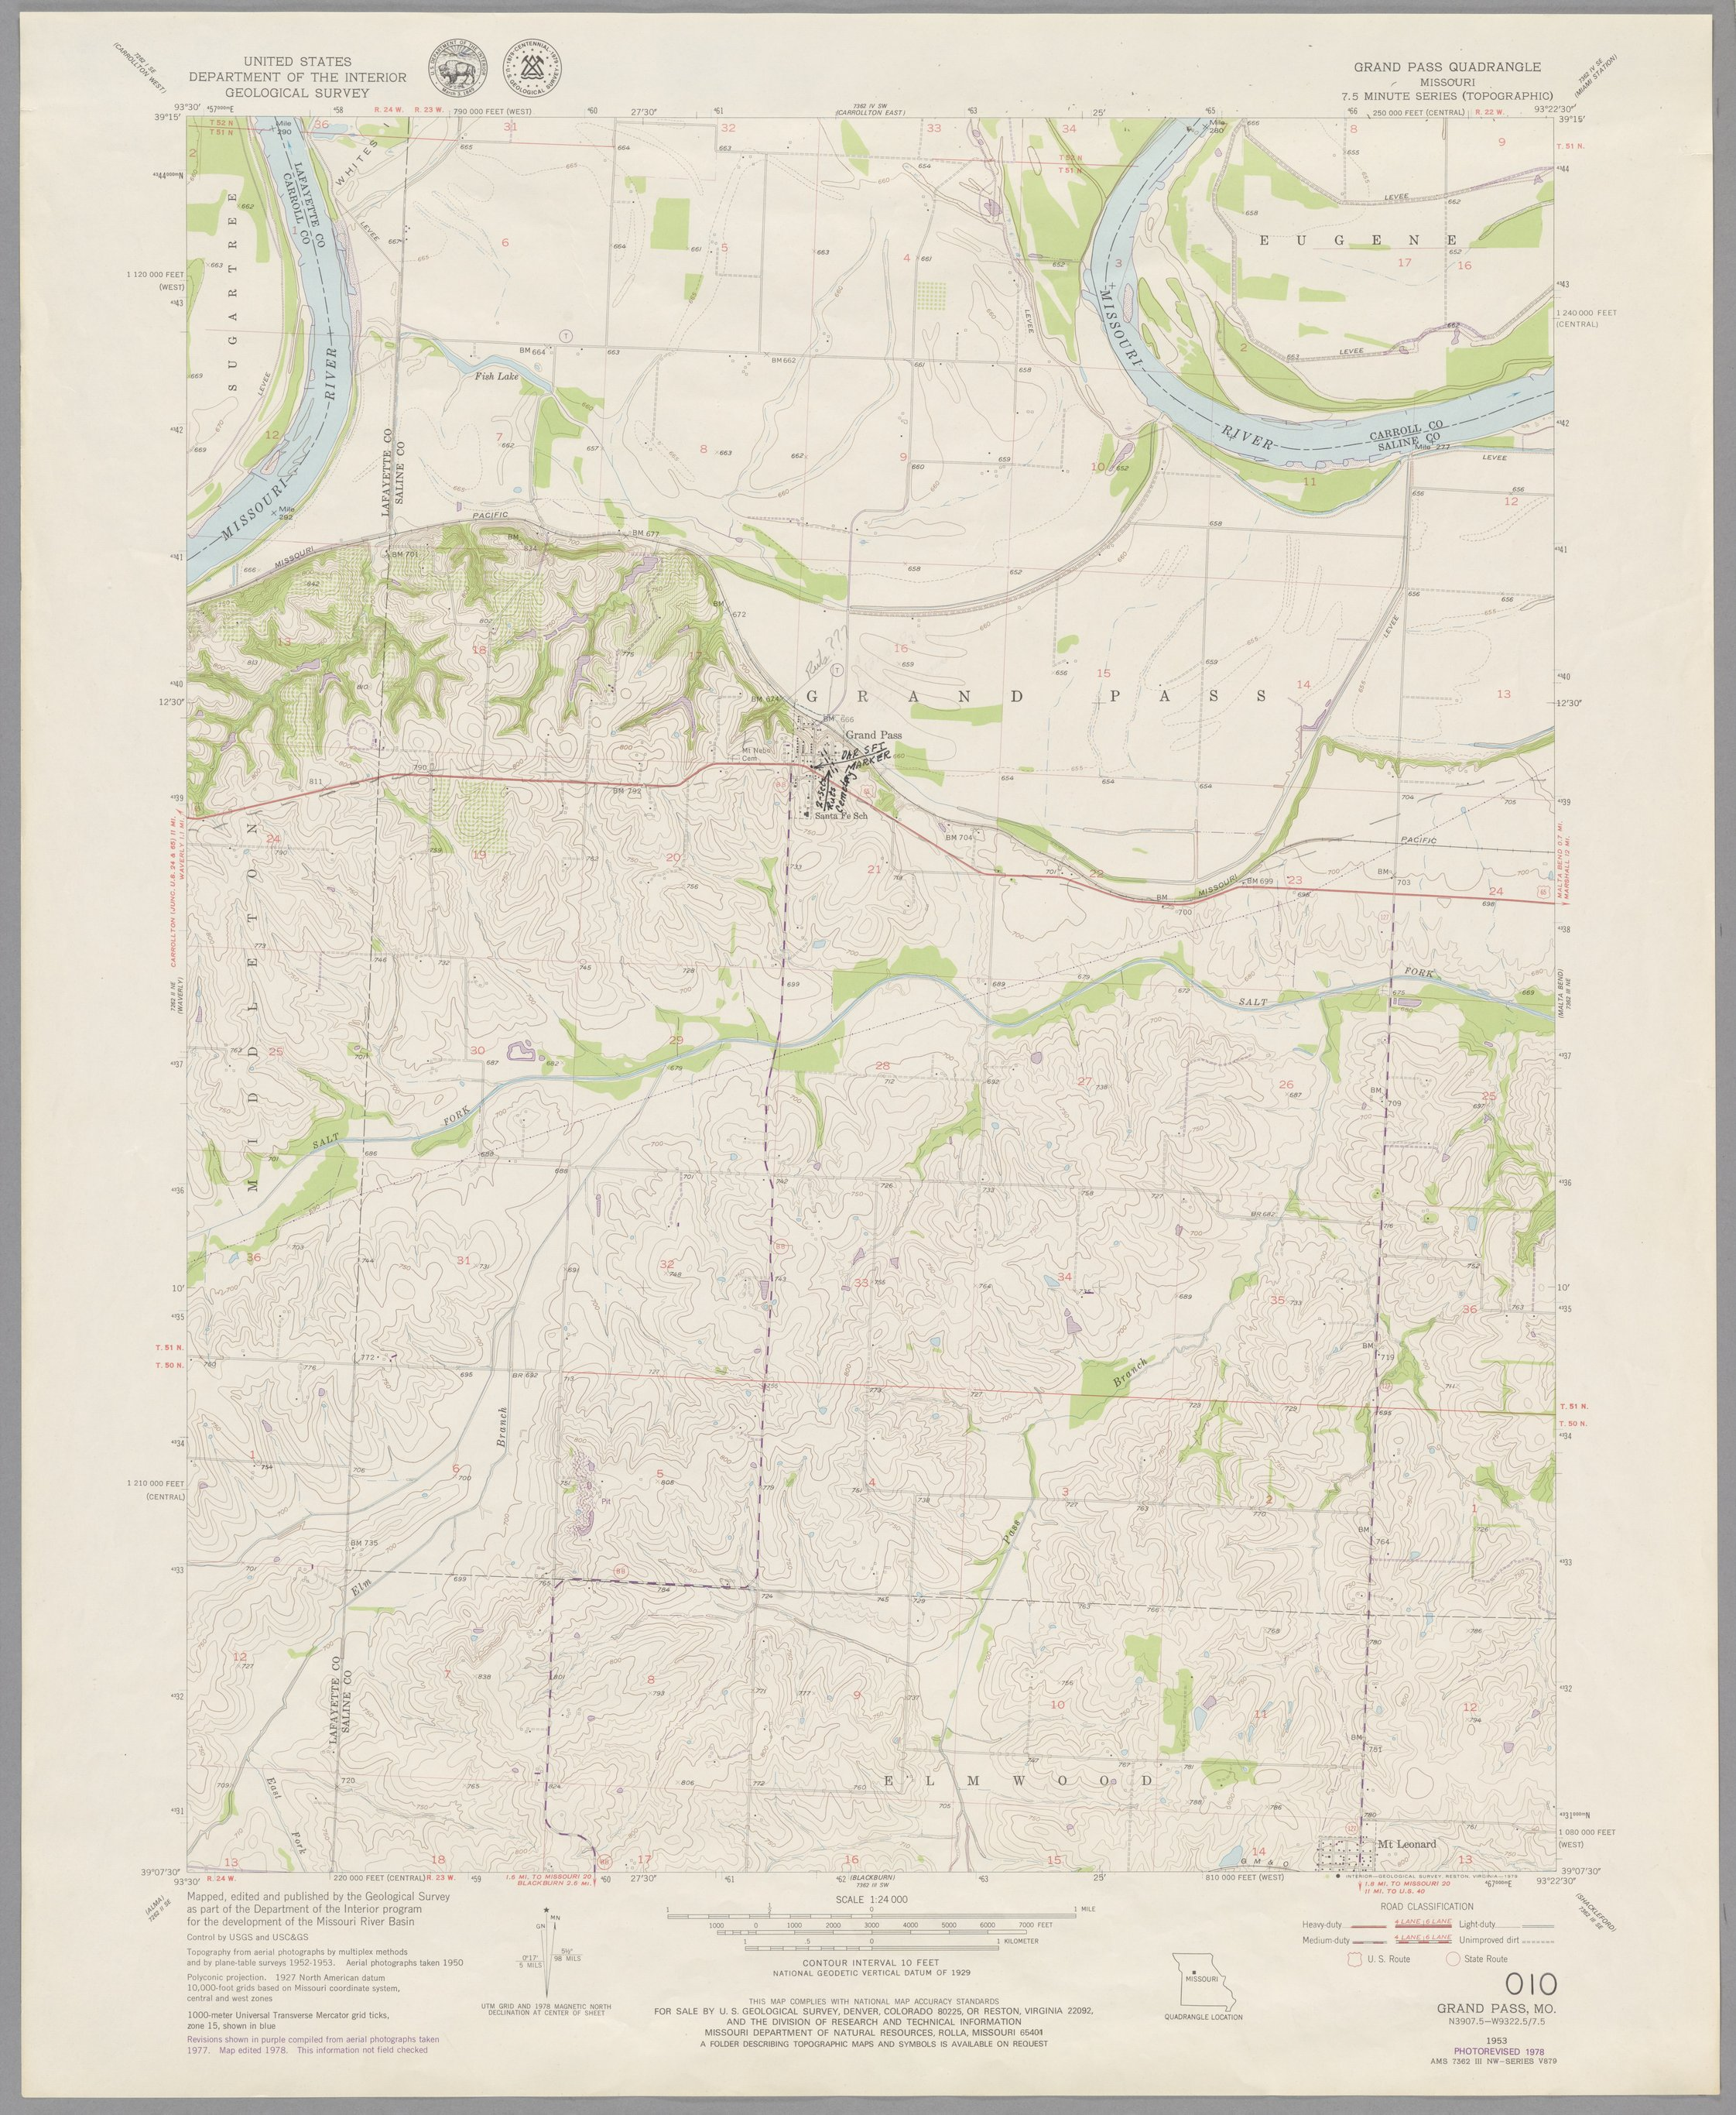 Kroh Collection. Group 1: Santa Fe Trail - Map 010: Grand Pass quadrangle, showing the early (1820s-1840s) route of the Santa Fe Trail in Missouri